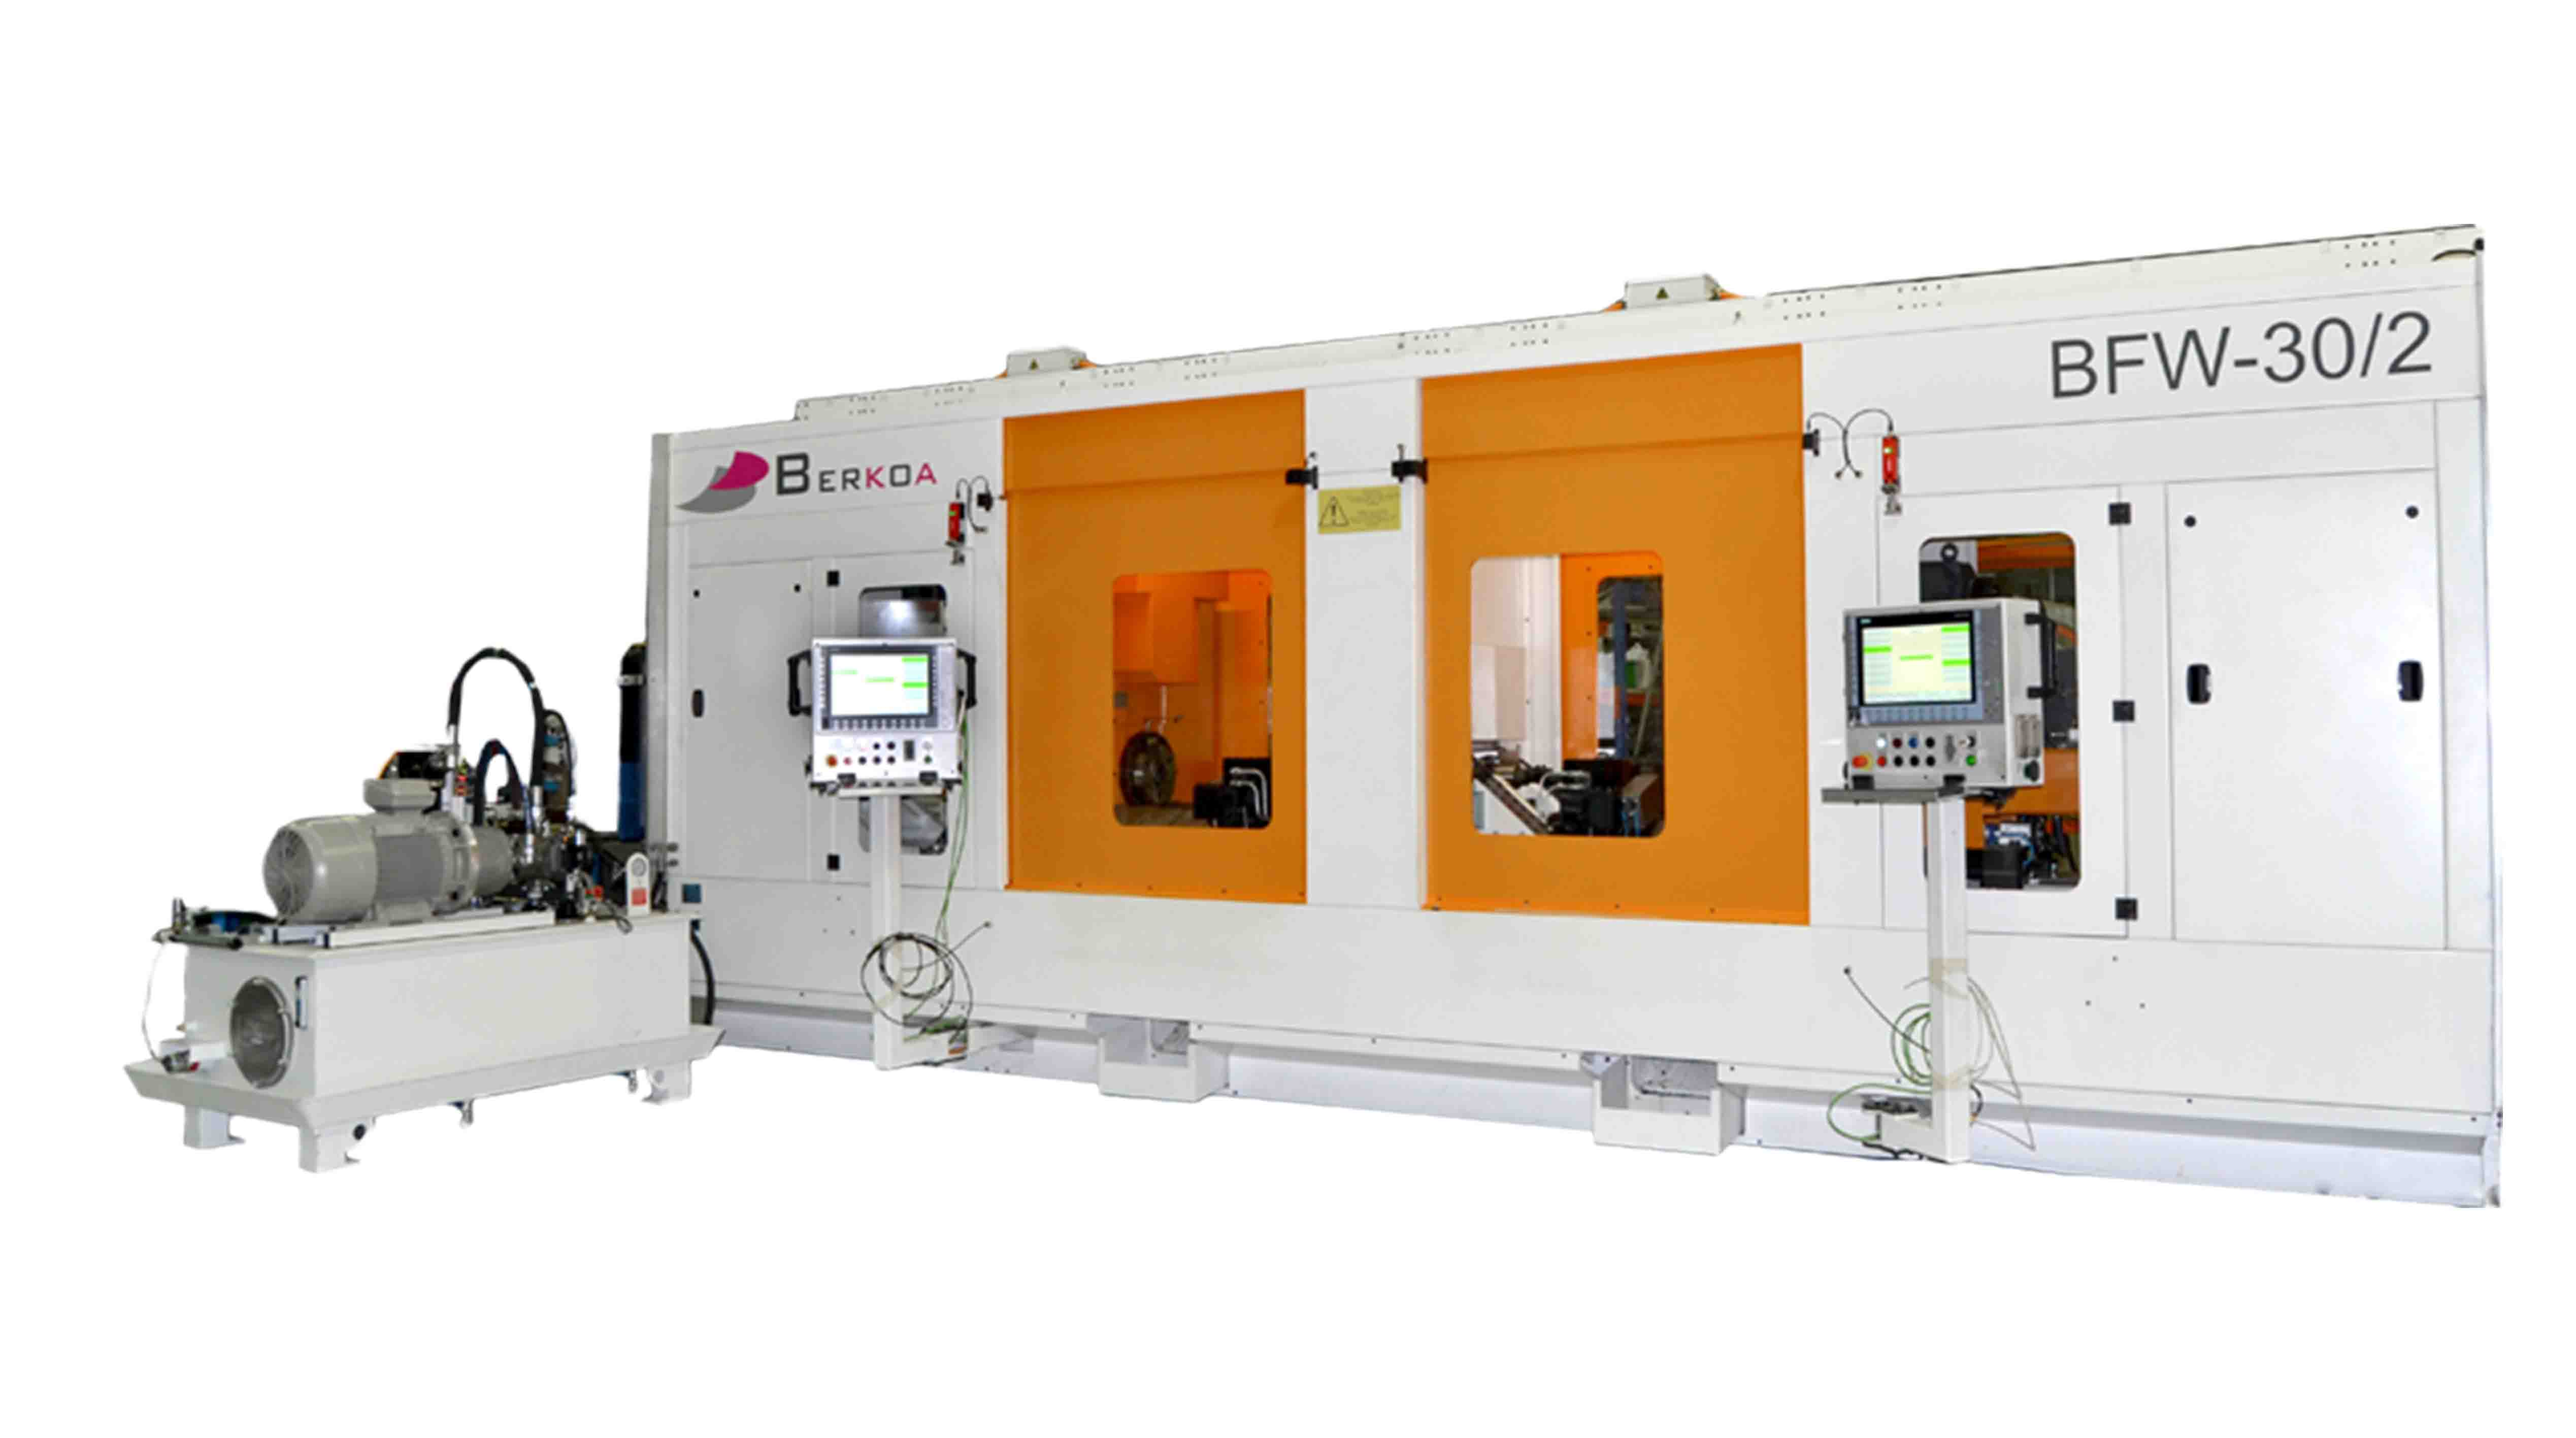 BWF-30 Friction spin welding machine with two stations